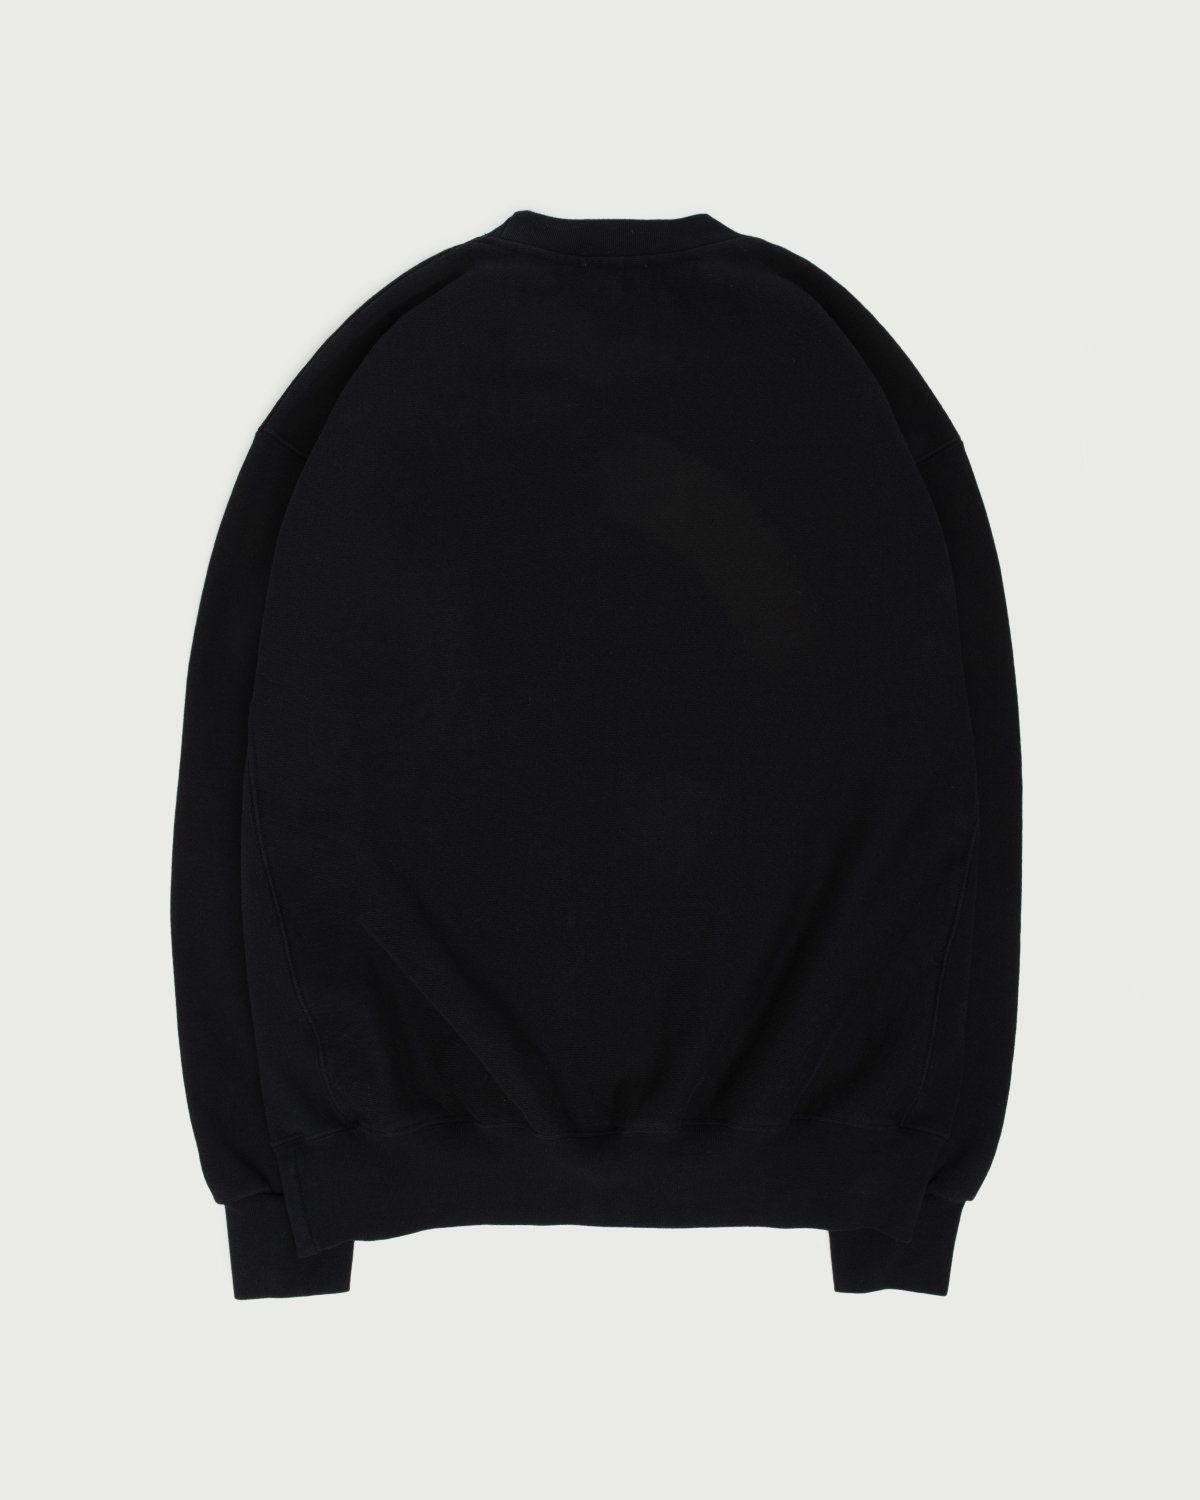 Aries - Premium Temple Sweatshirt Black - Image 3